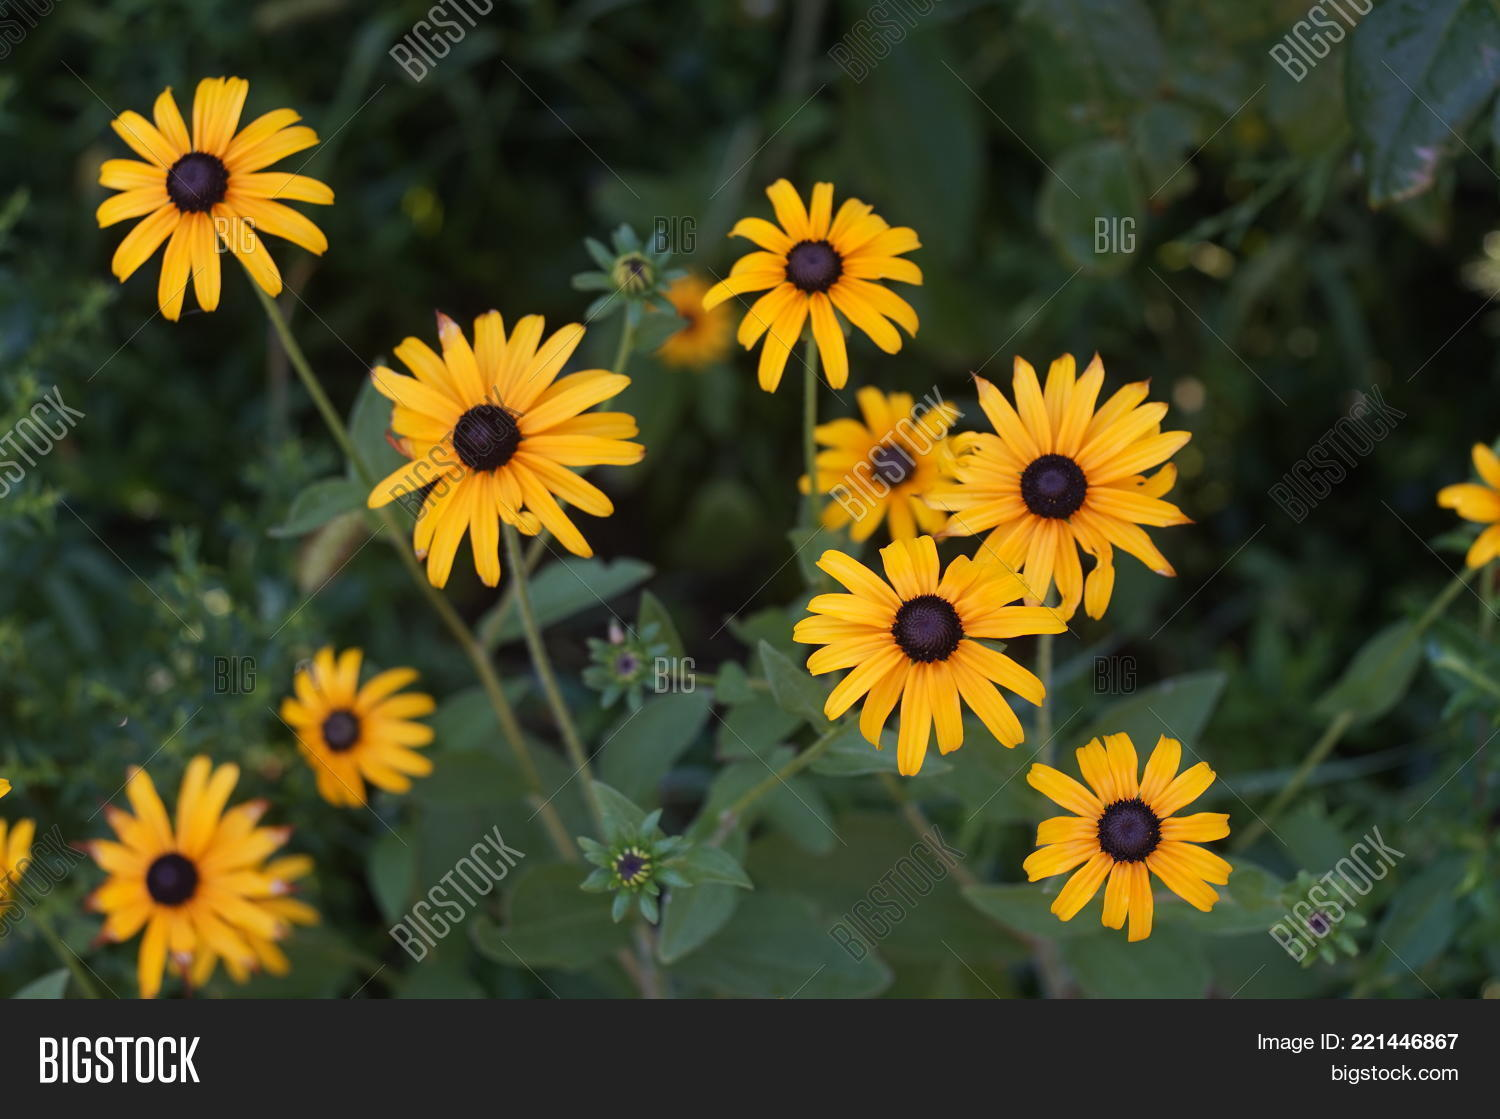 Yellow Flowers Black Image Photo Free Trial Bigstock